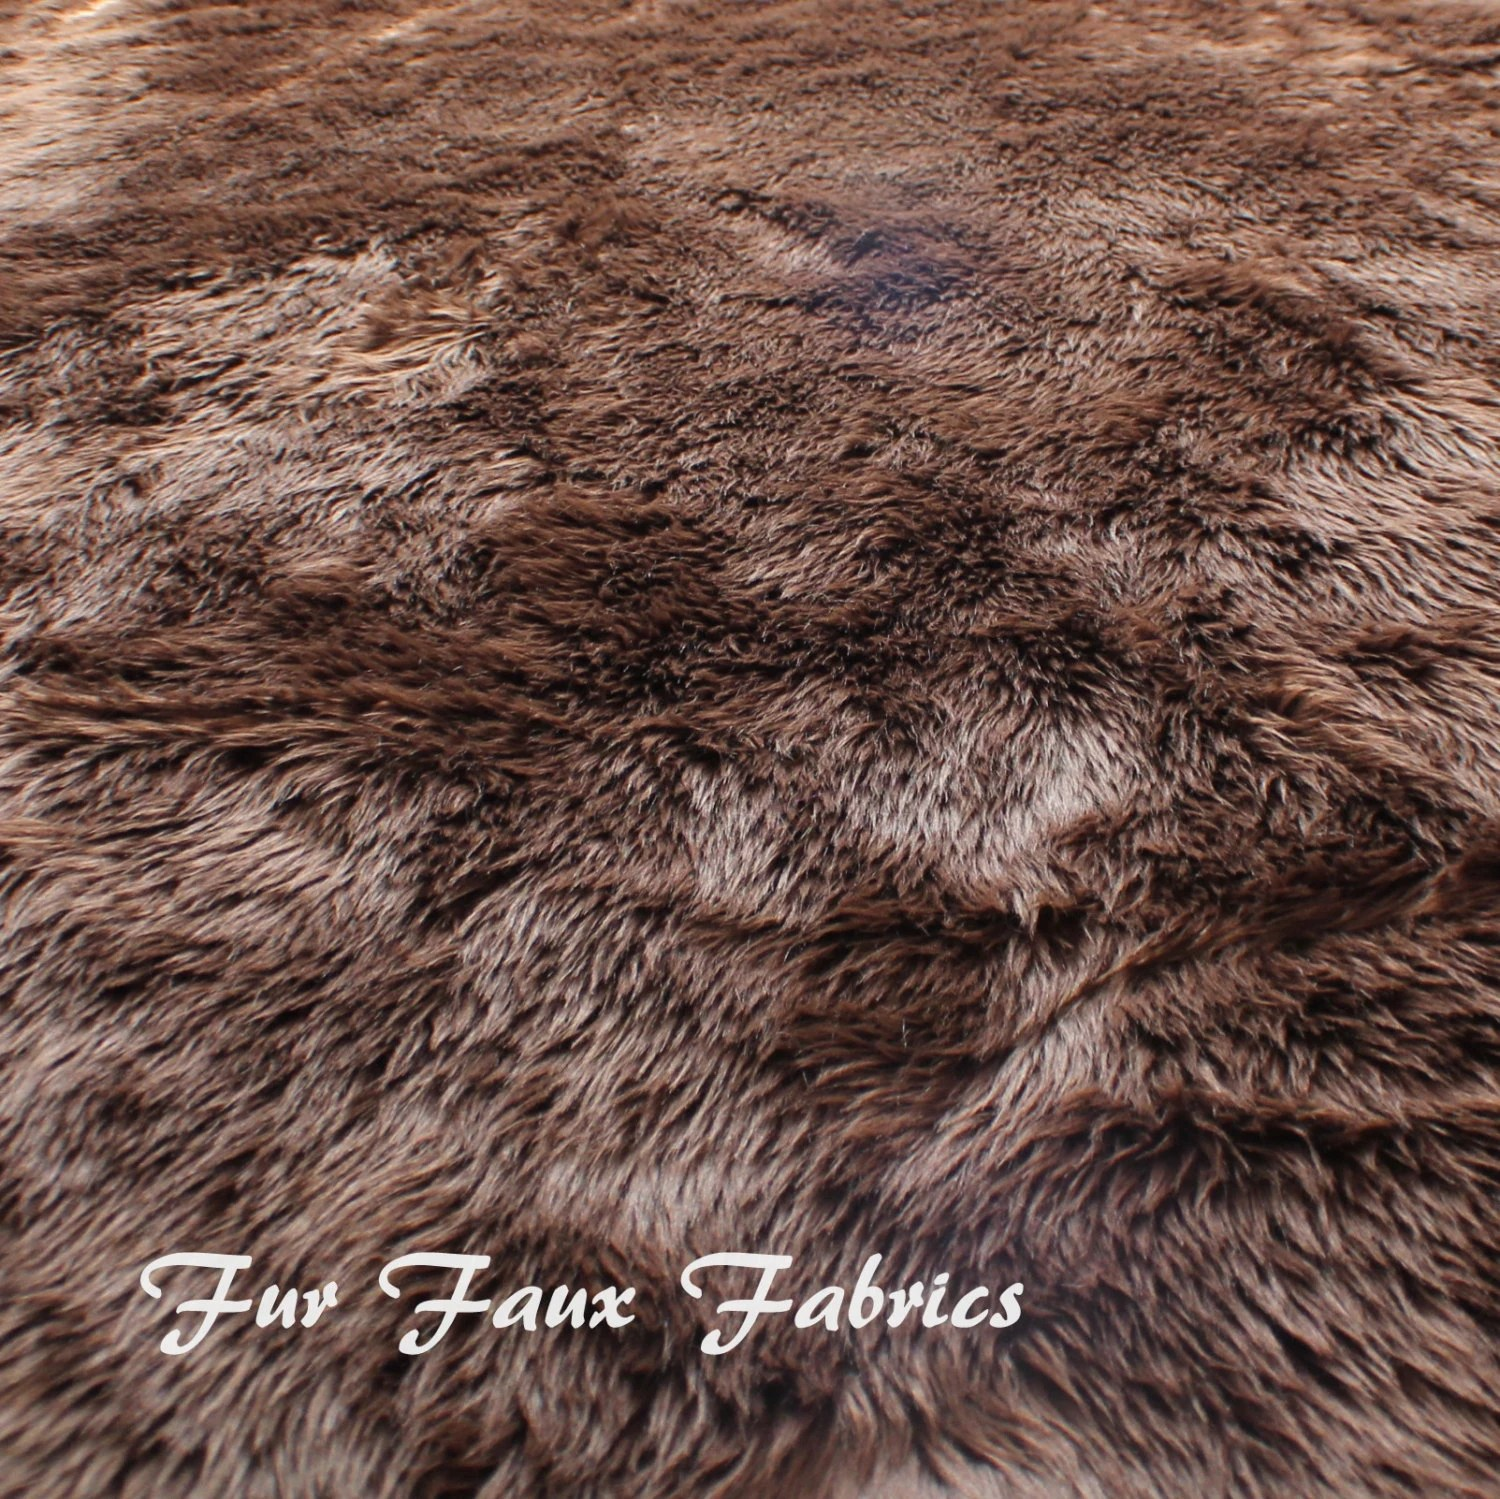 100 polyester sofa throws home edge murphy double solid wood bed brown shag luxury shaggy fur faux fabric by the yard remnants